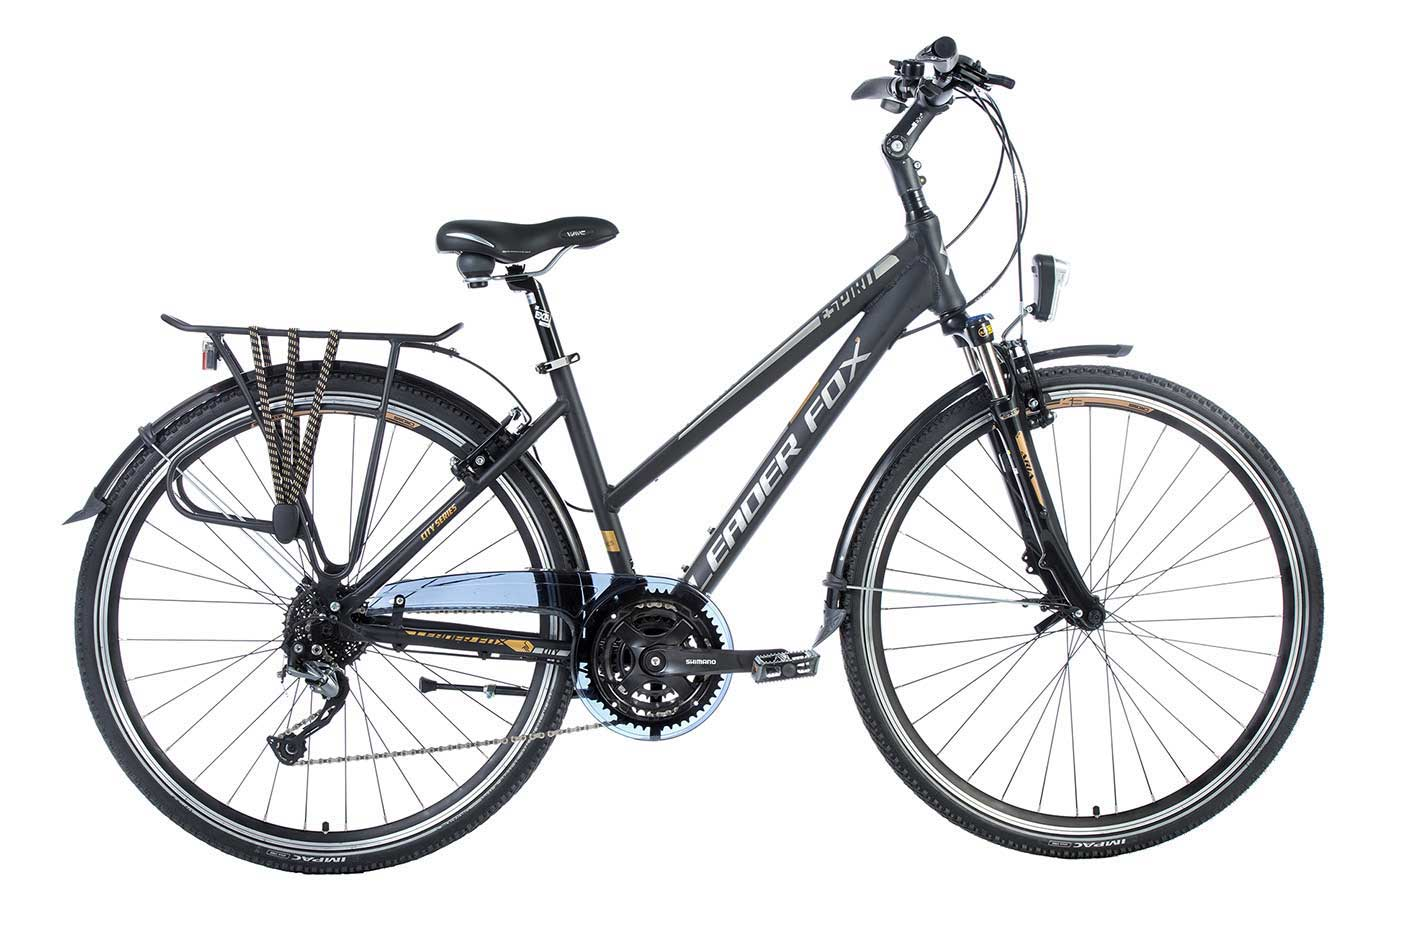 Bicicleta de Oras Leader Fox Espirit Lady, 24 viteze, suspensie, lock out, roata 28 inch